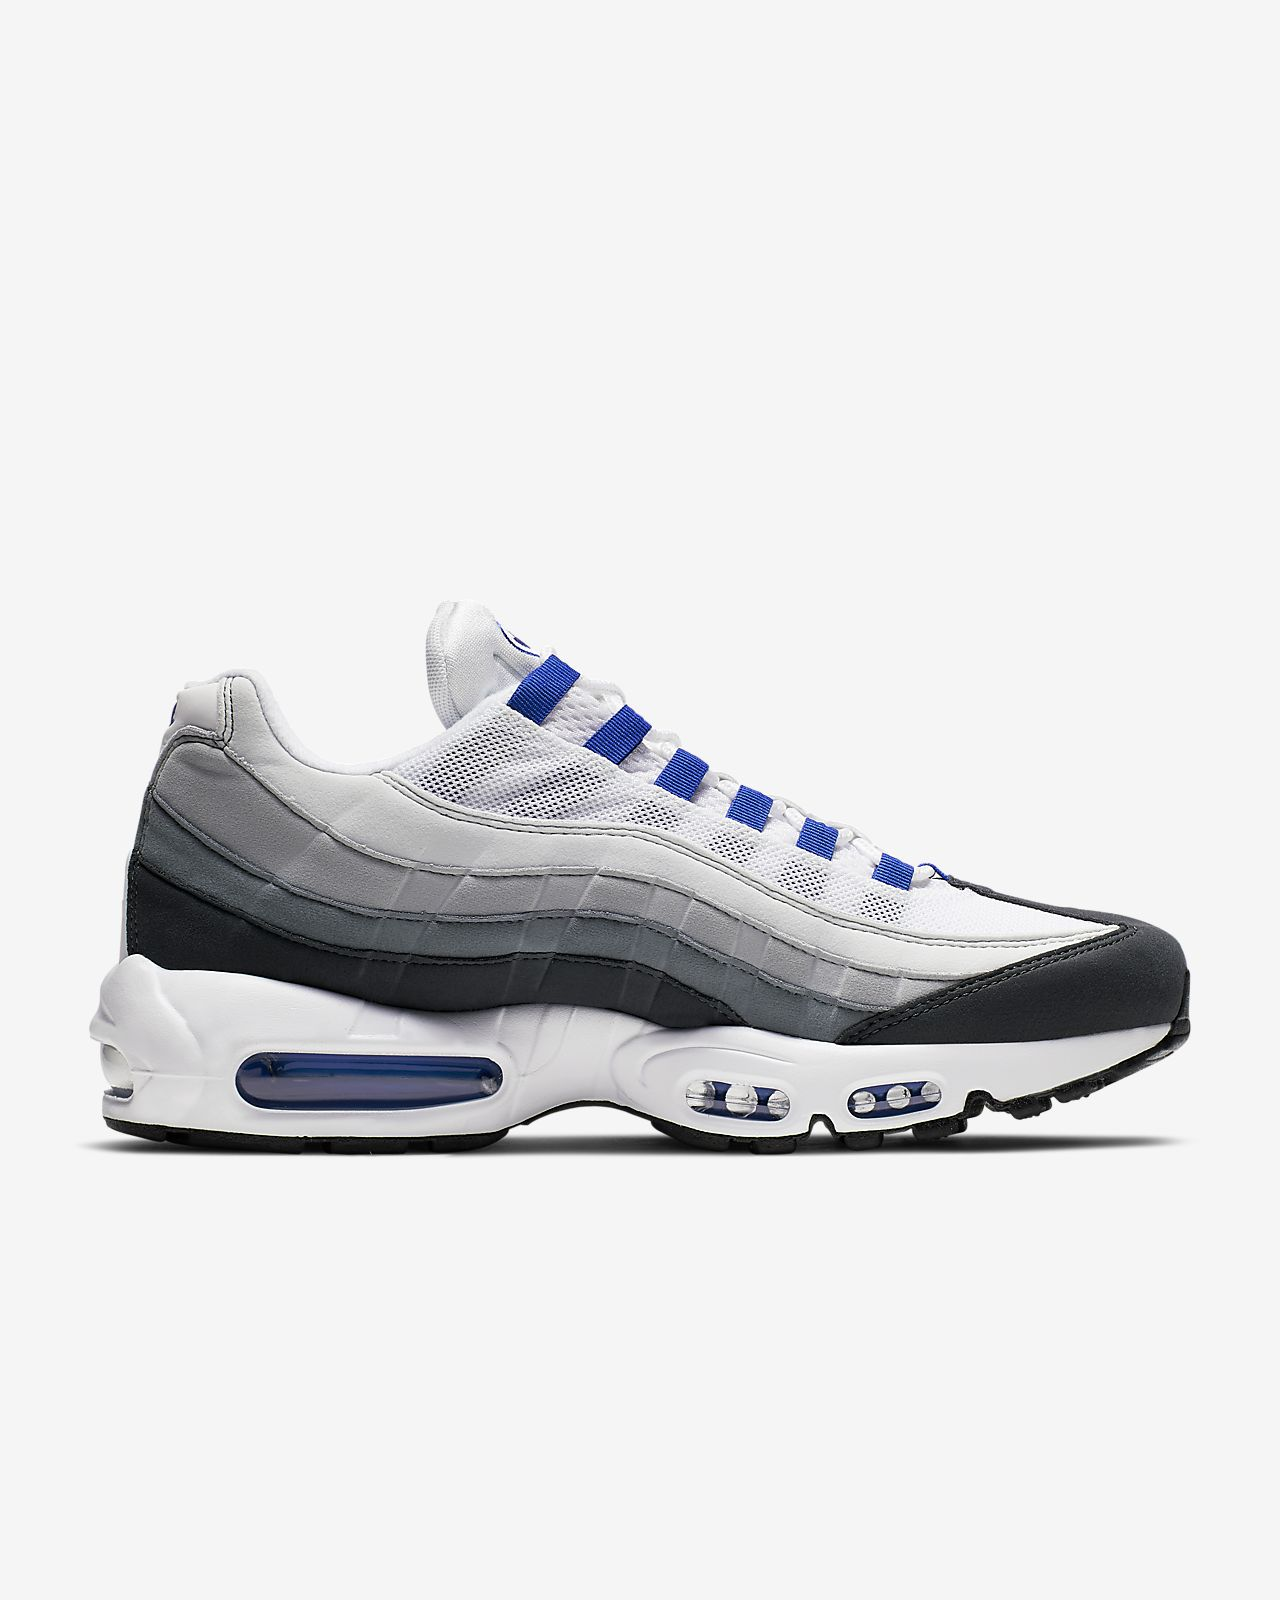 Air Max 95 Men's Shoe. Nike AU | Chaussure nike air, Nike